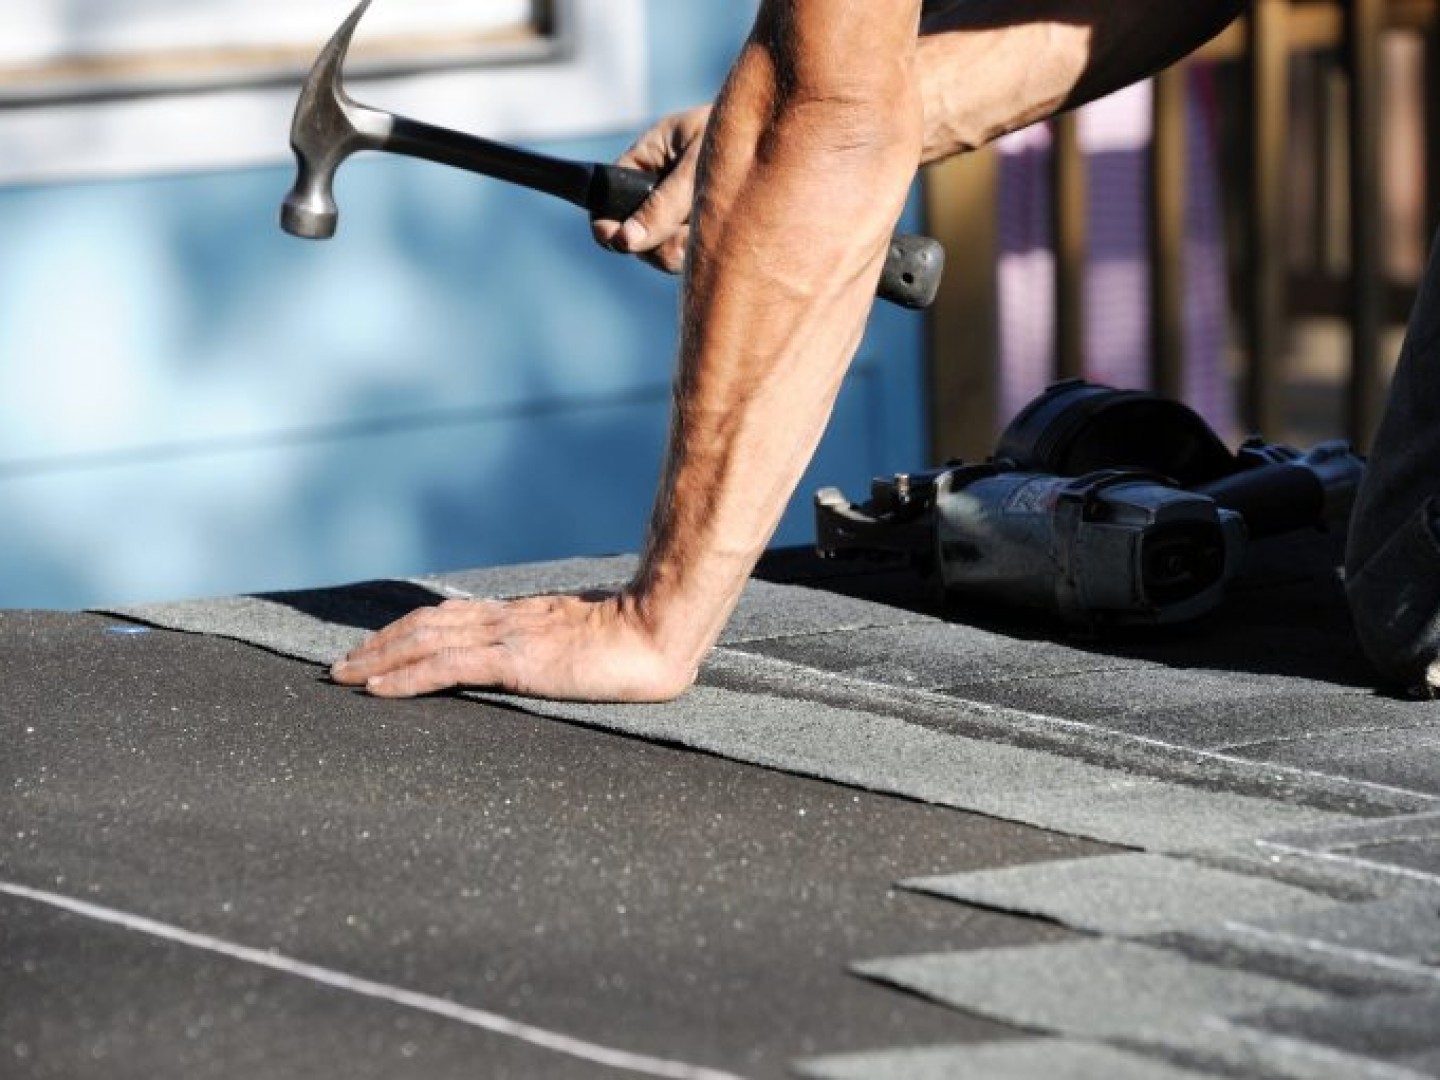 Find Reliable Asphalt Roofing Installation & Roof Repair in the Westminster, Reisterstown, & surrounding MD areas